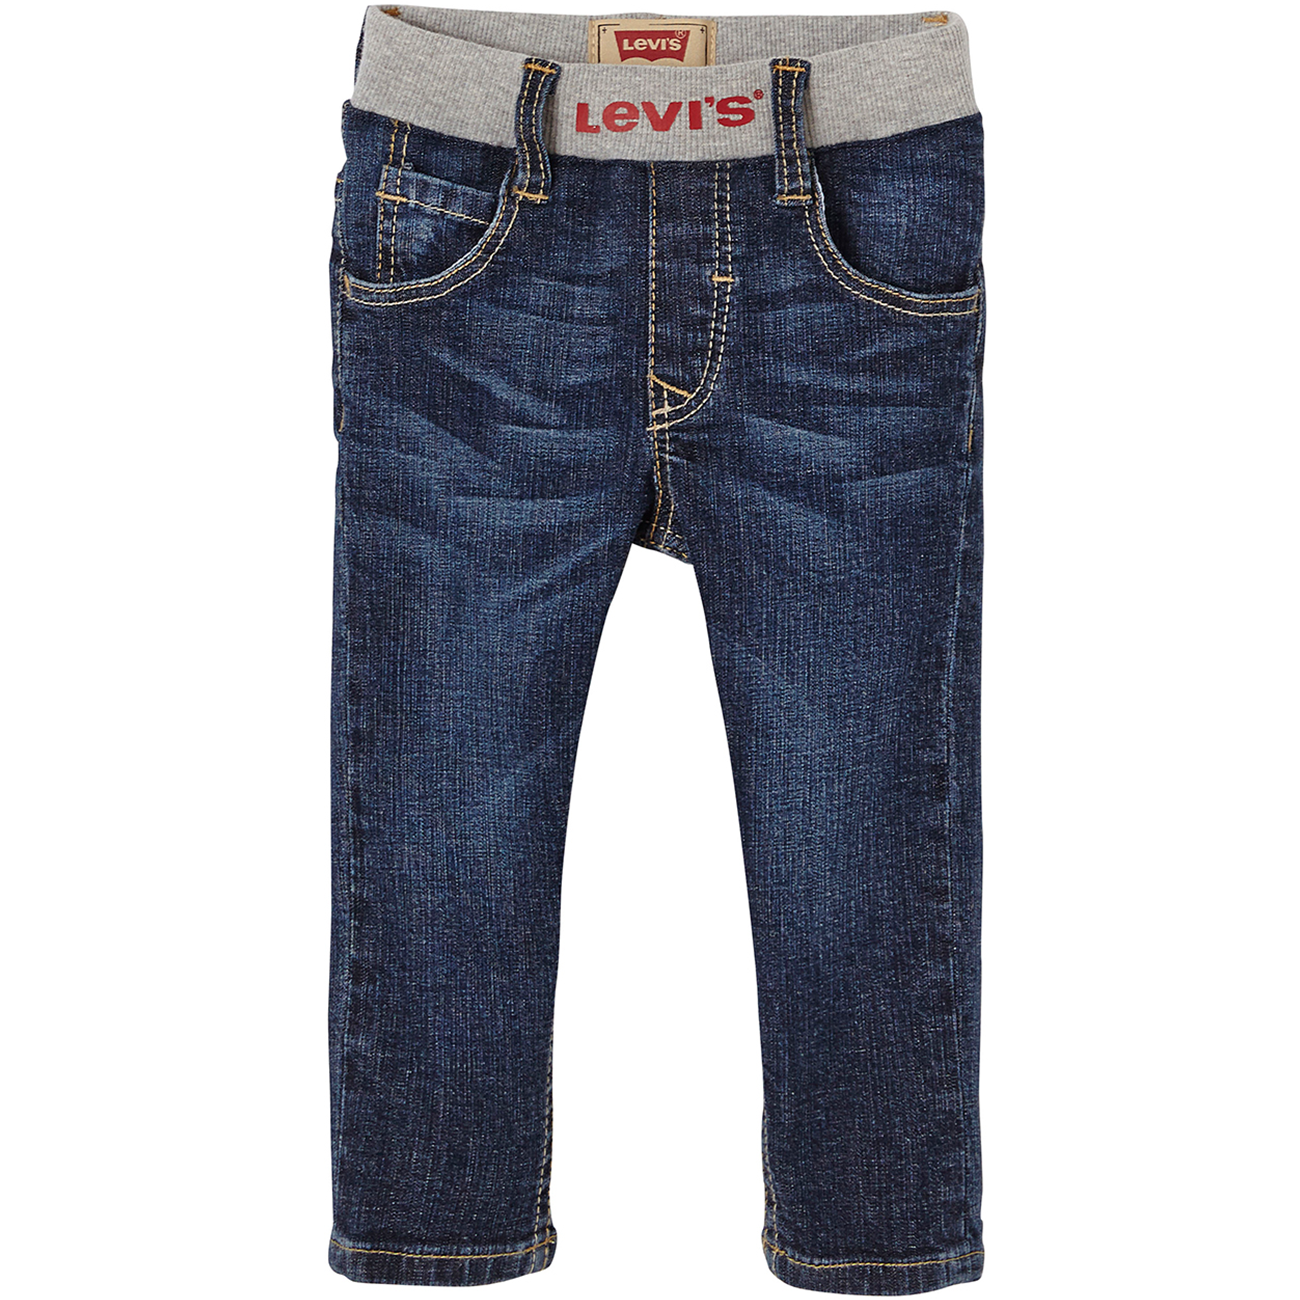 fb515647f16 Levi's Jeans Double Denim Indigo